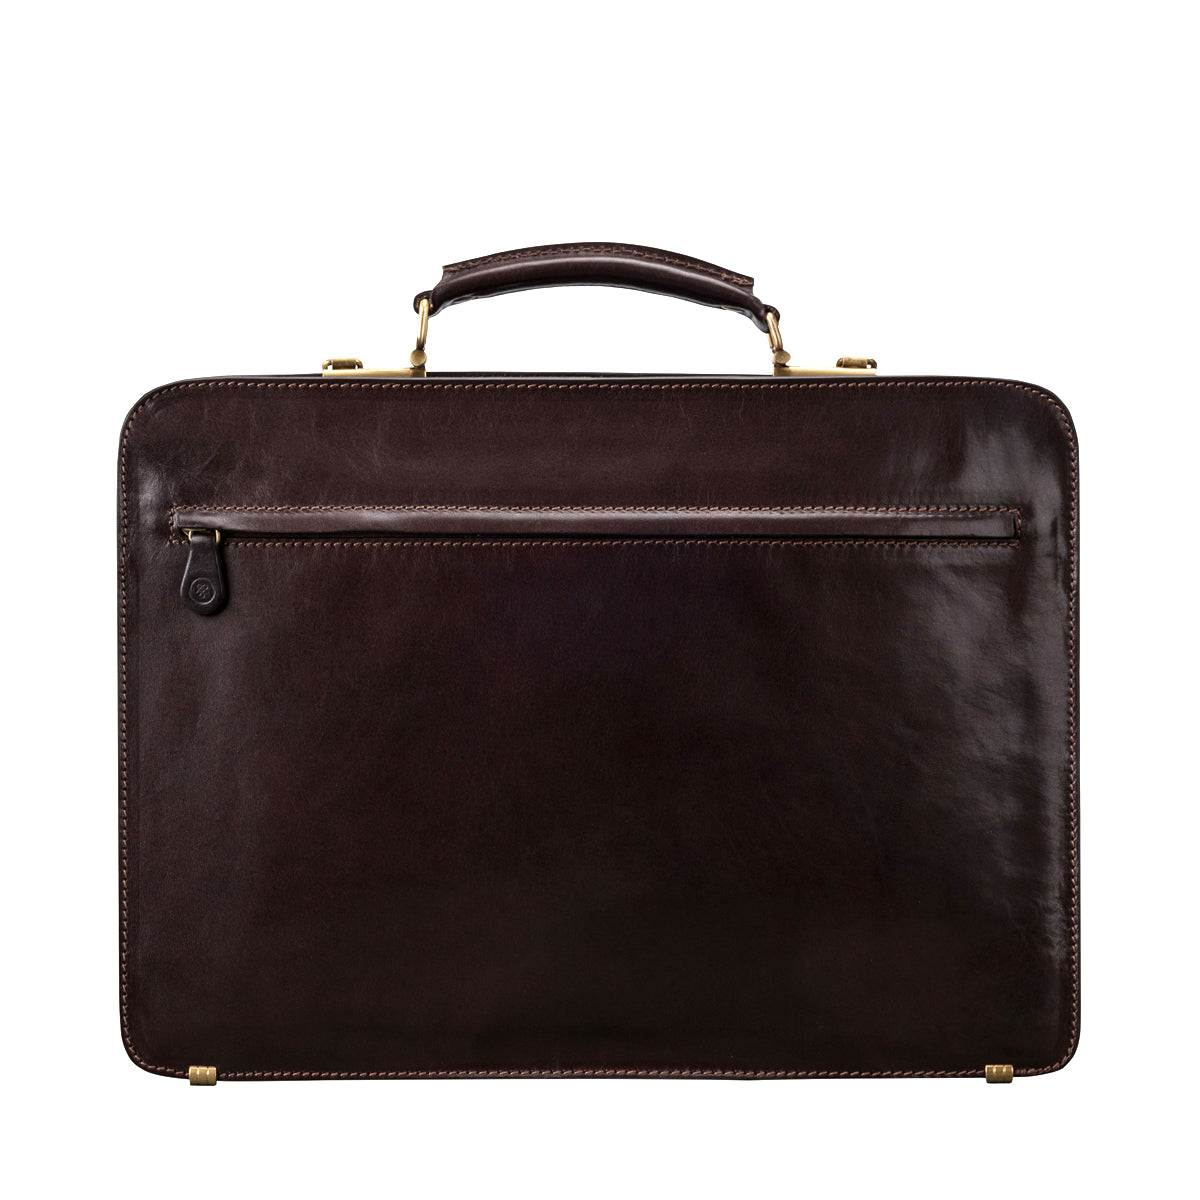 Image 4 of the 'Alanzo' Brown Veg-Tanned Leather Briefcase